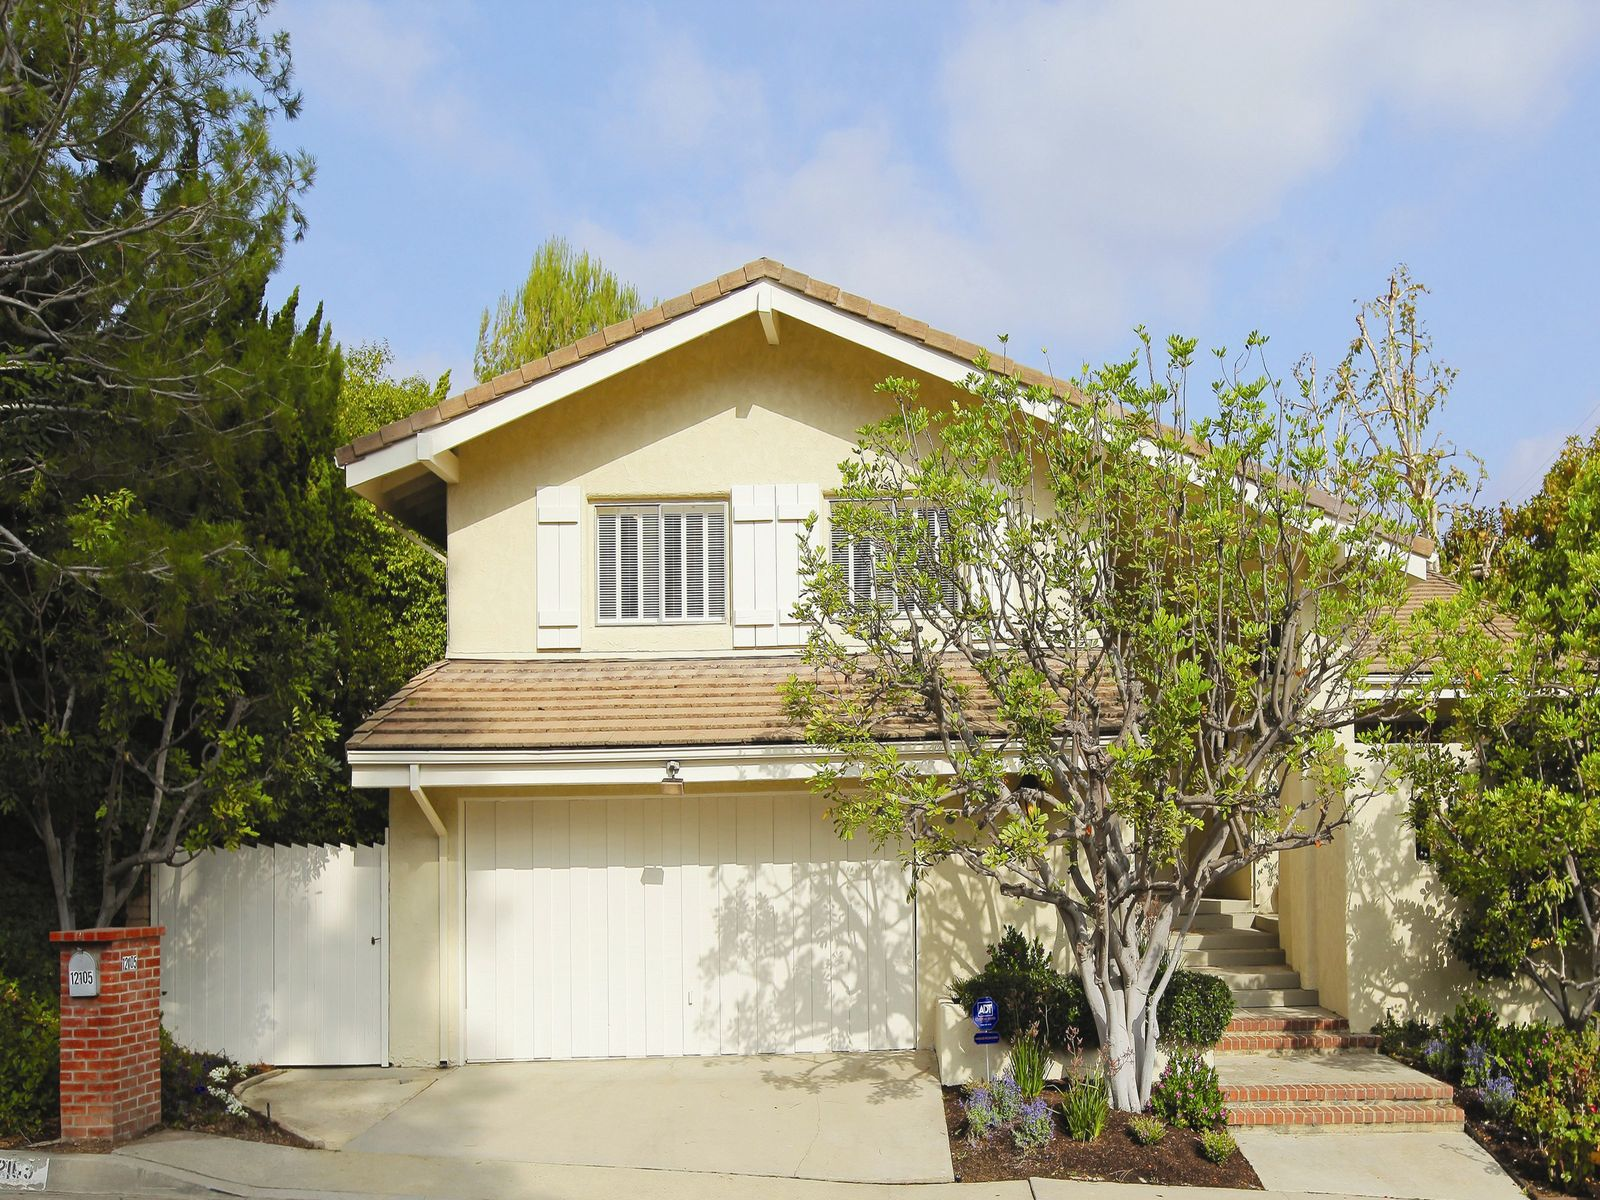 Brentwood Classic, Brentwood CA Single Family Home - Los Angeles Real Estate